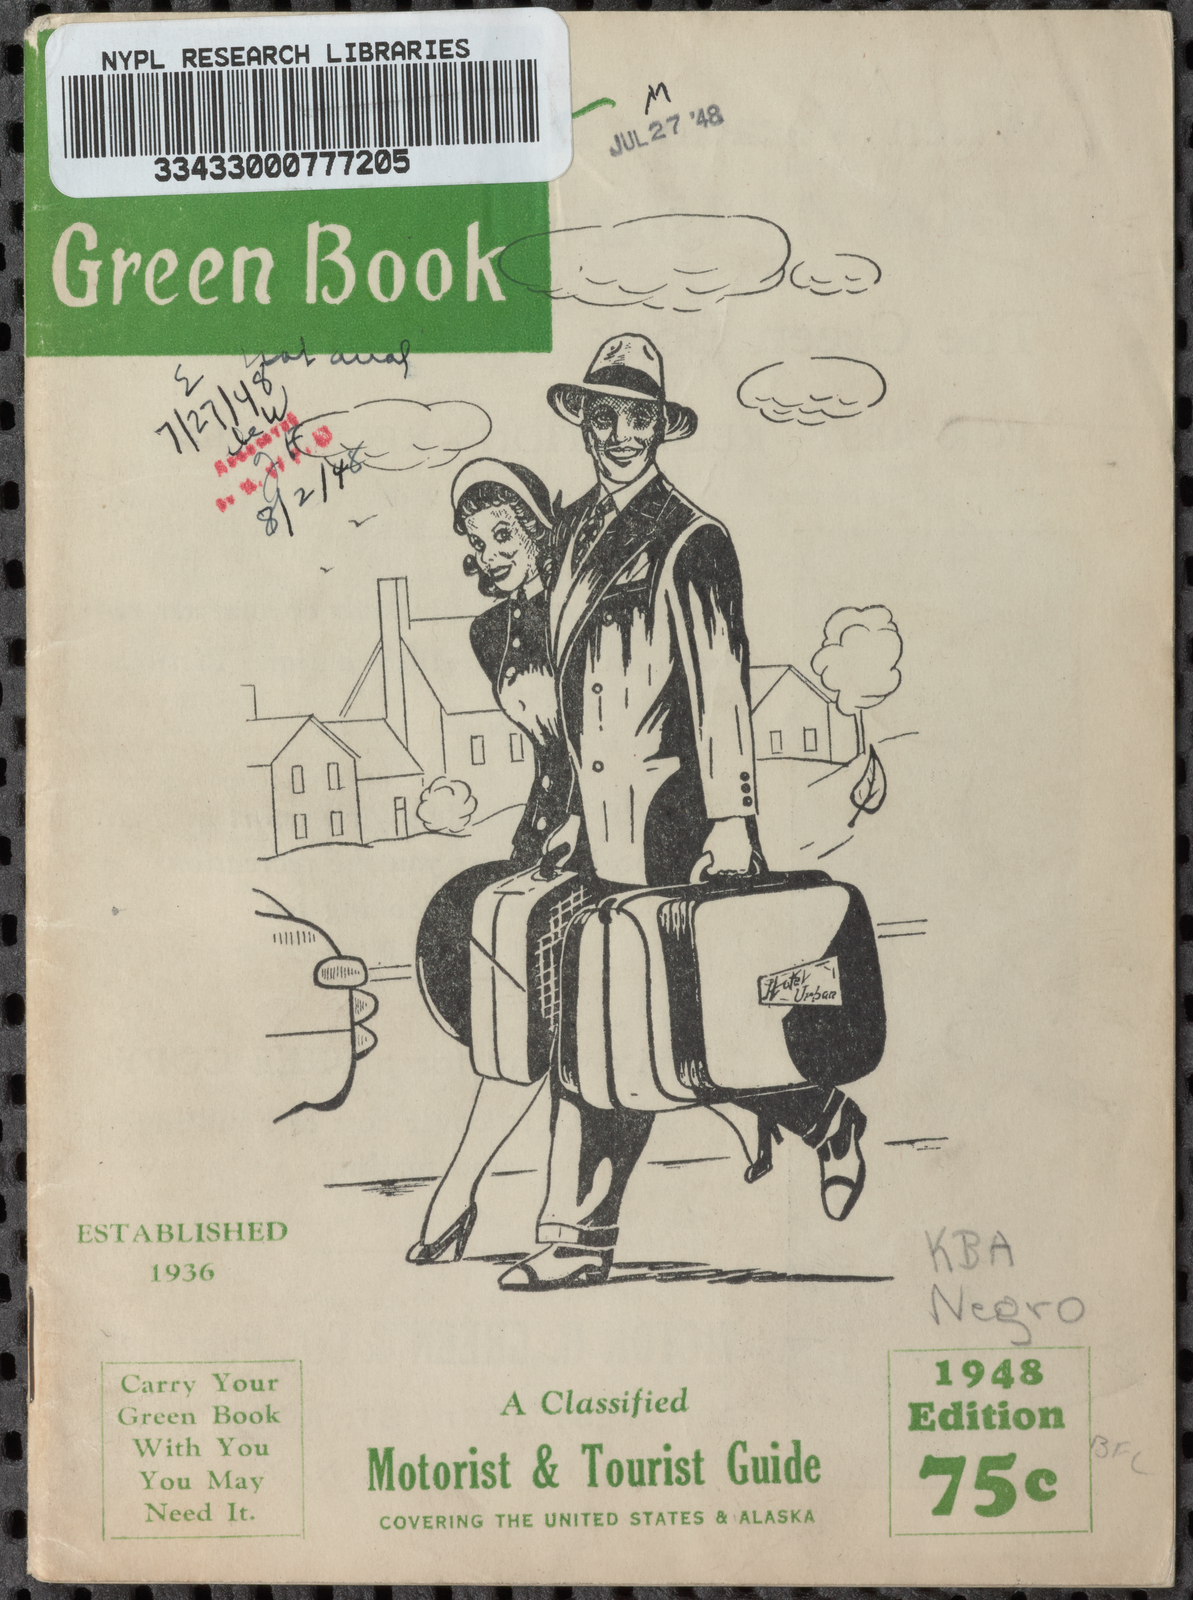 Green Book 1948 Edition Cover